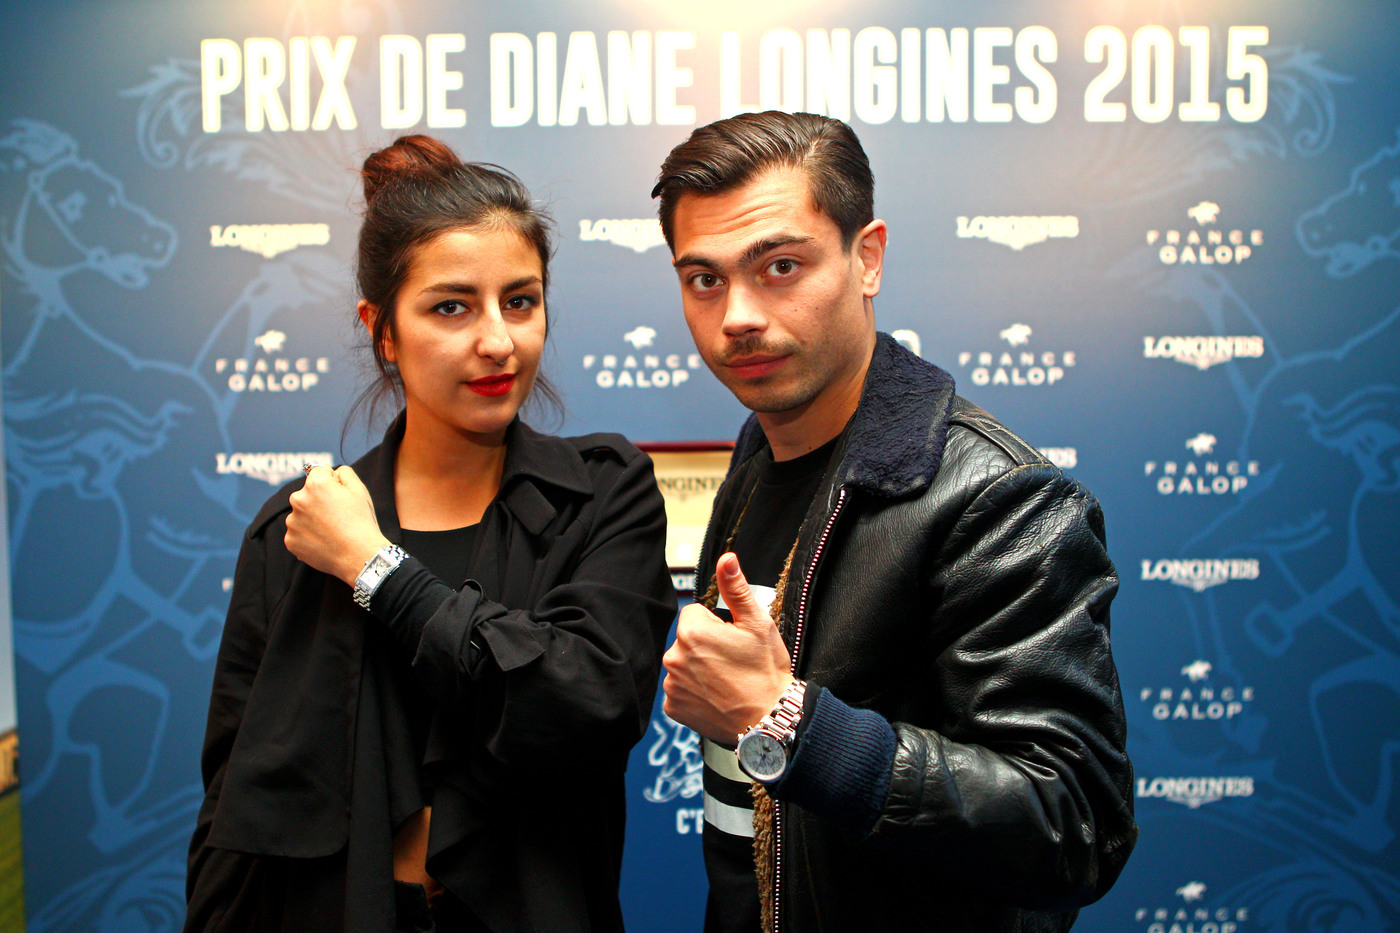 Longines Flat Racing Event: The Prix de Diane Longines 2015: Races, Elegance and Wonders in Chantilly 5